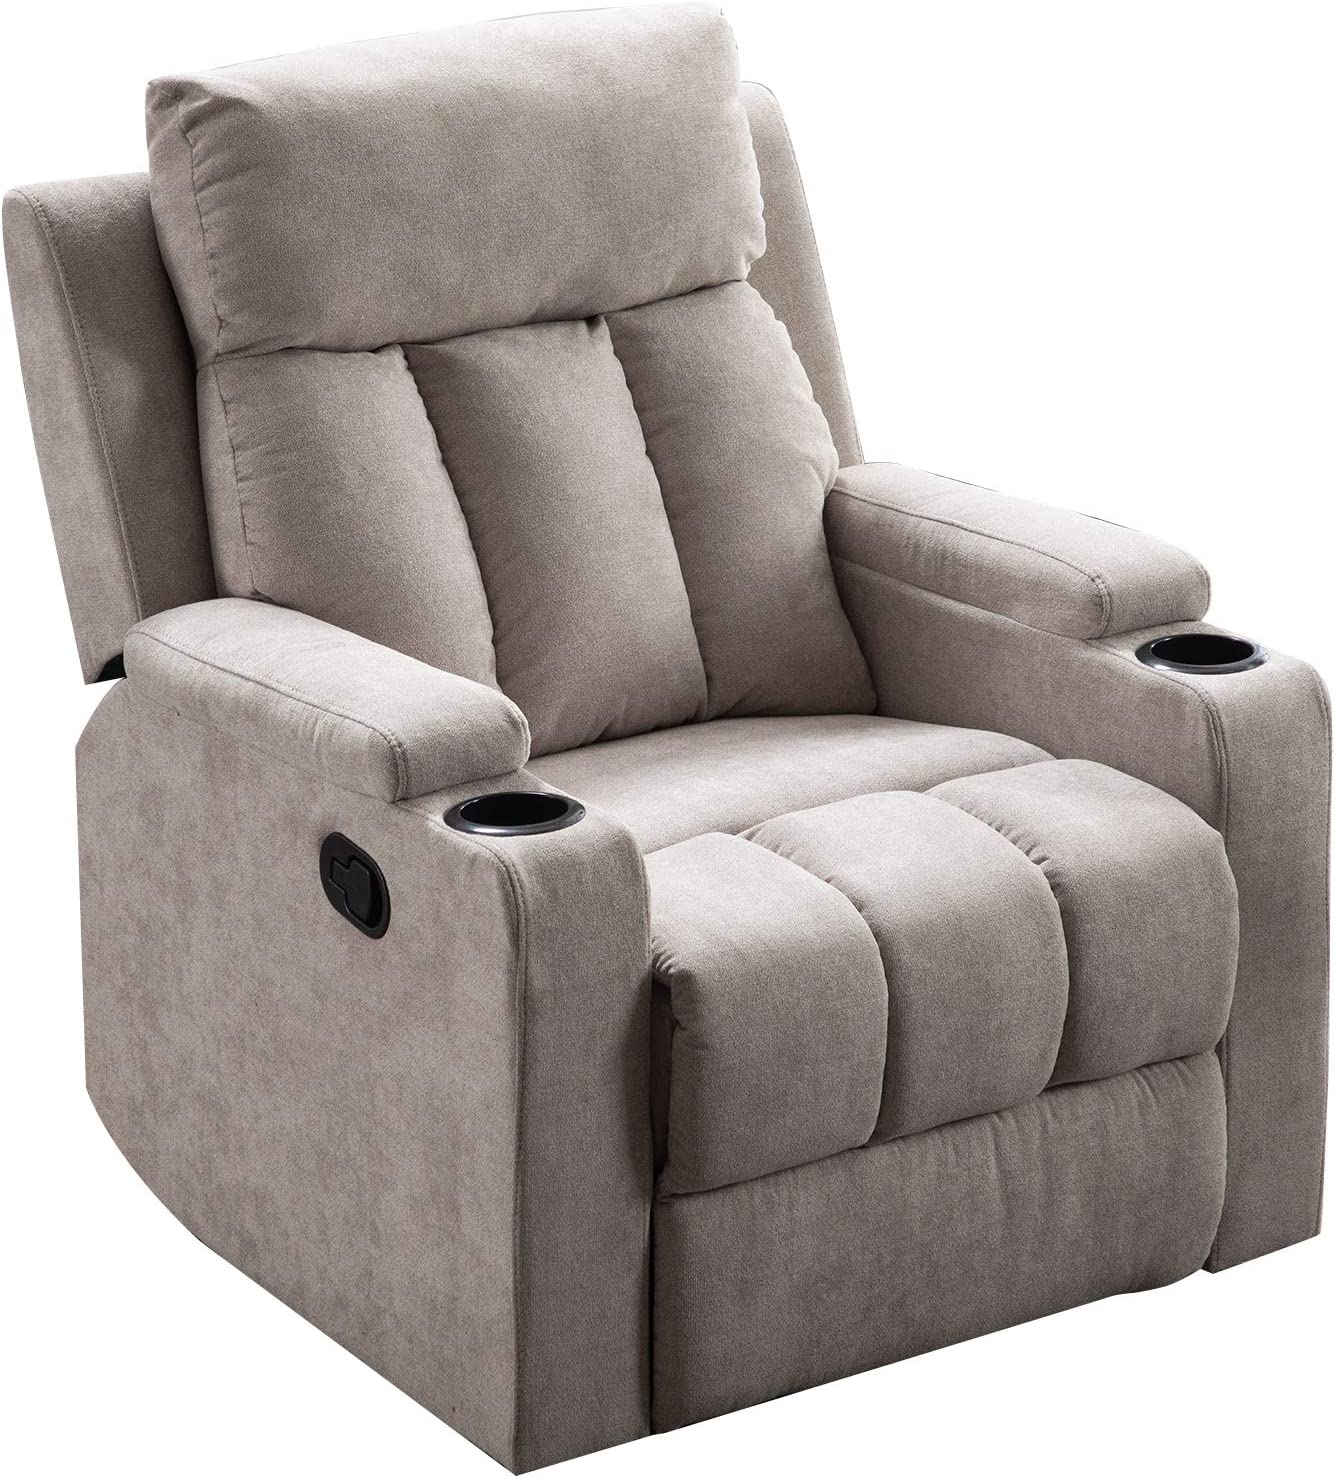 Merax Recliner Chair Lazy Boy Sofa, Manual Ergonomic Design with Overstuffed Armrest, Footrest and 2 Cup Holders for Theater, Living Room, Light Grey